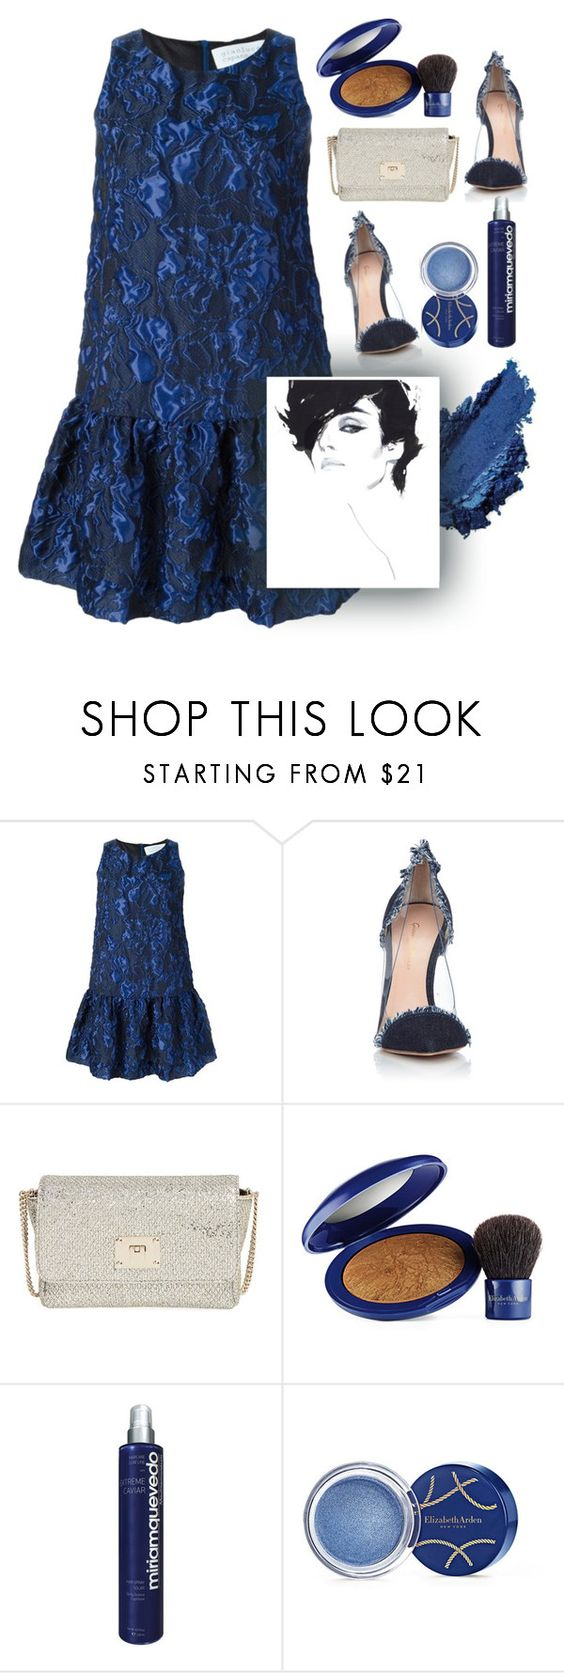 """Dresses"" by grinevagh ❤ liked on Polyvore featuring Gianluca Capannolo, Gianvito Rossi, Jimmy Choo, Elizabeth Arden and Miriam Quevedo"